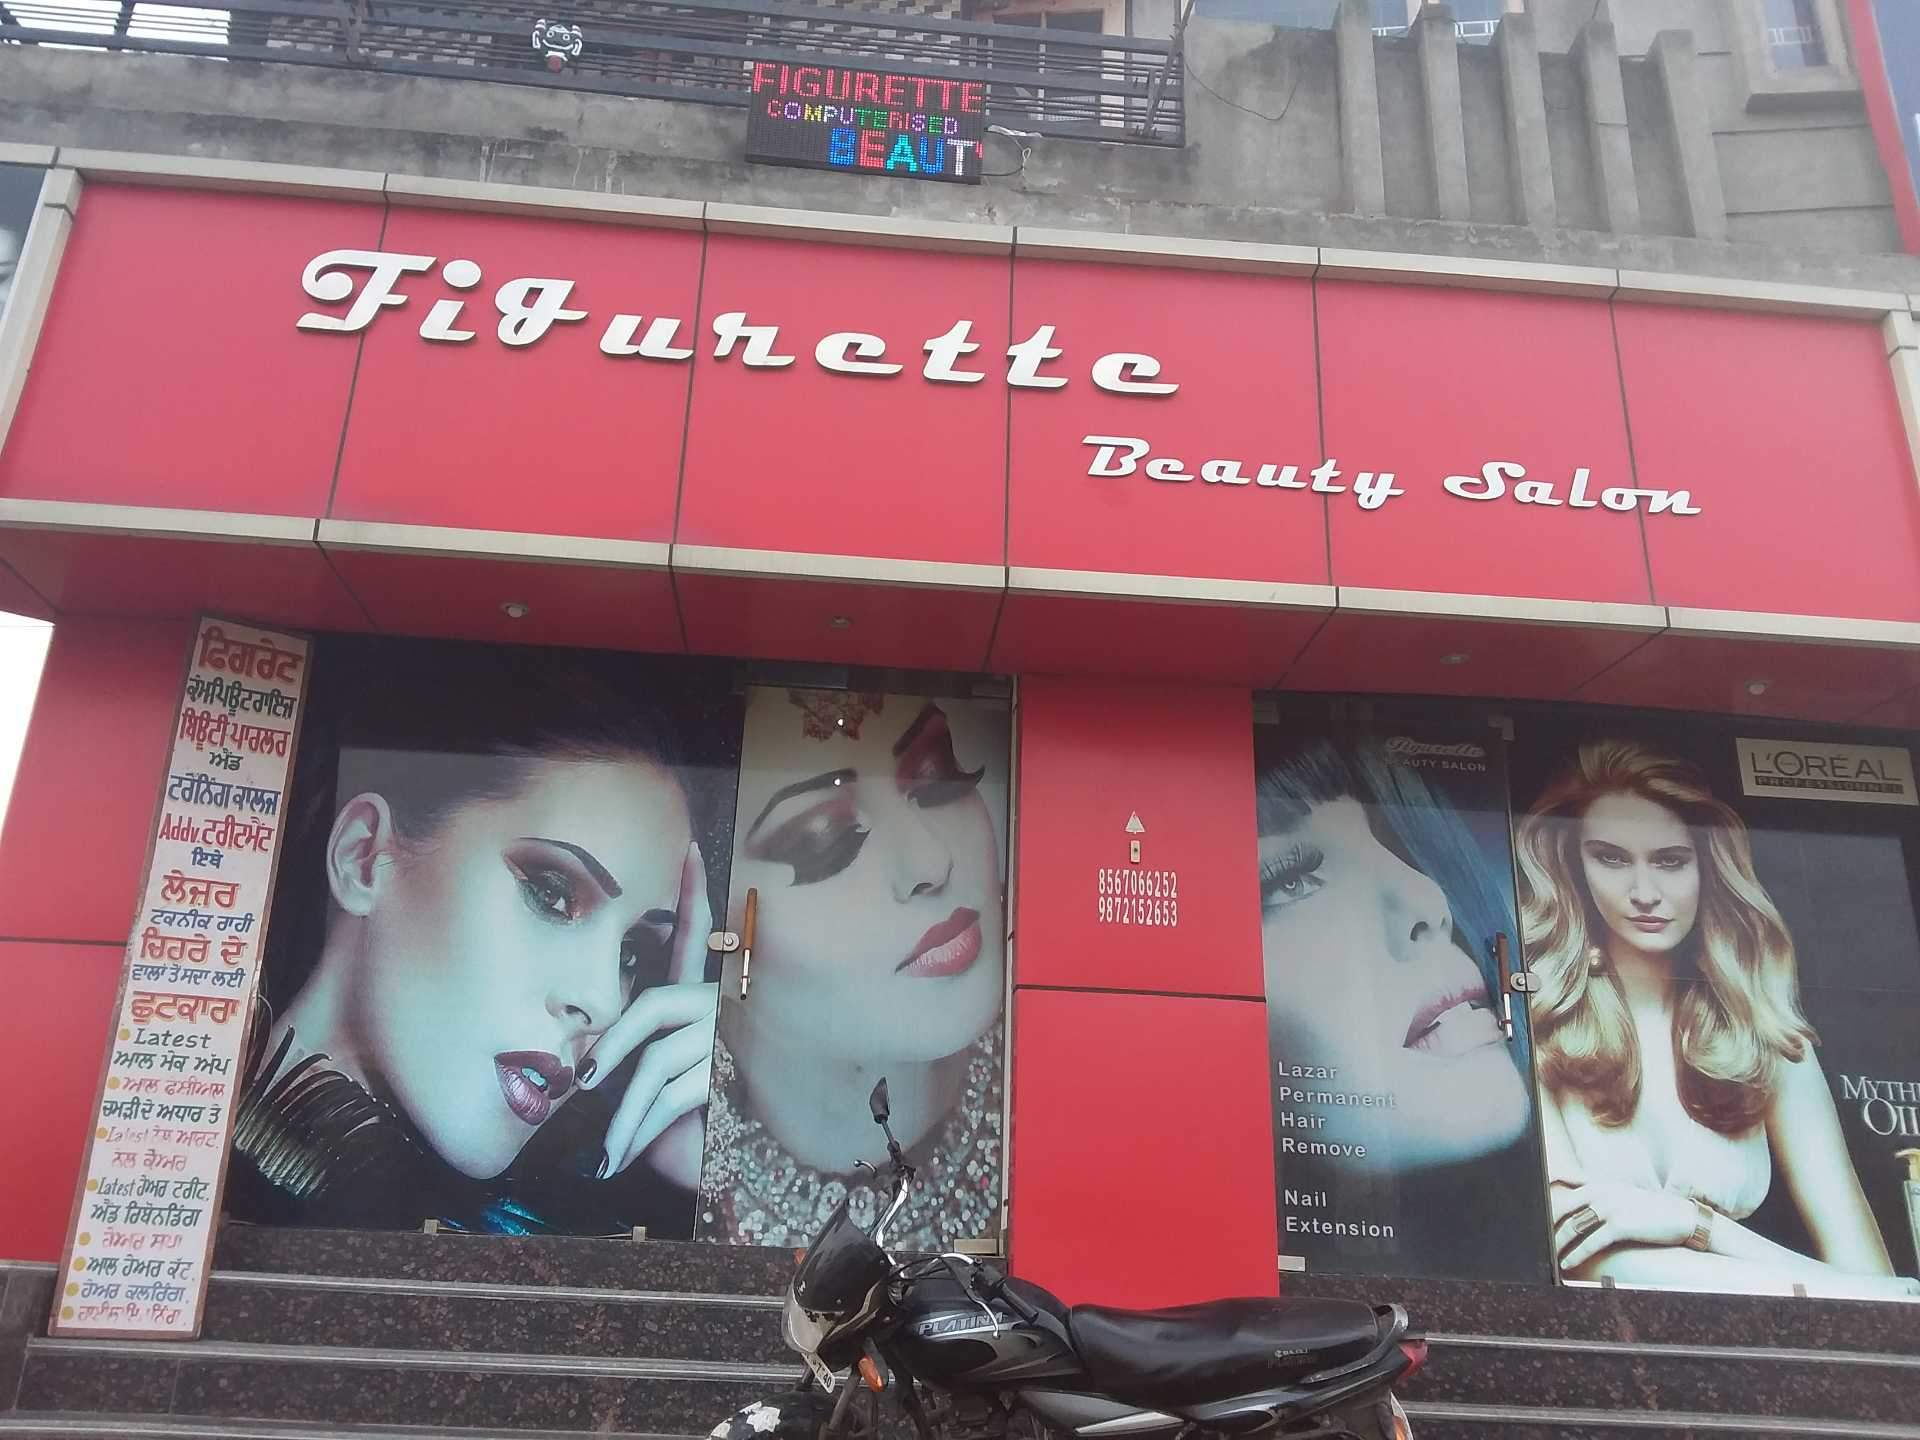 Figurette - Lawrence Road - Amritsar Image